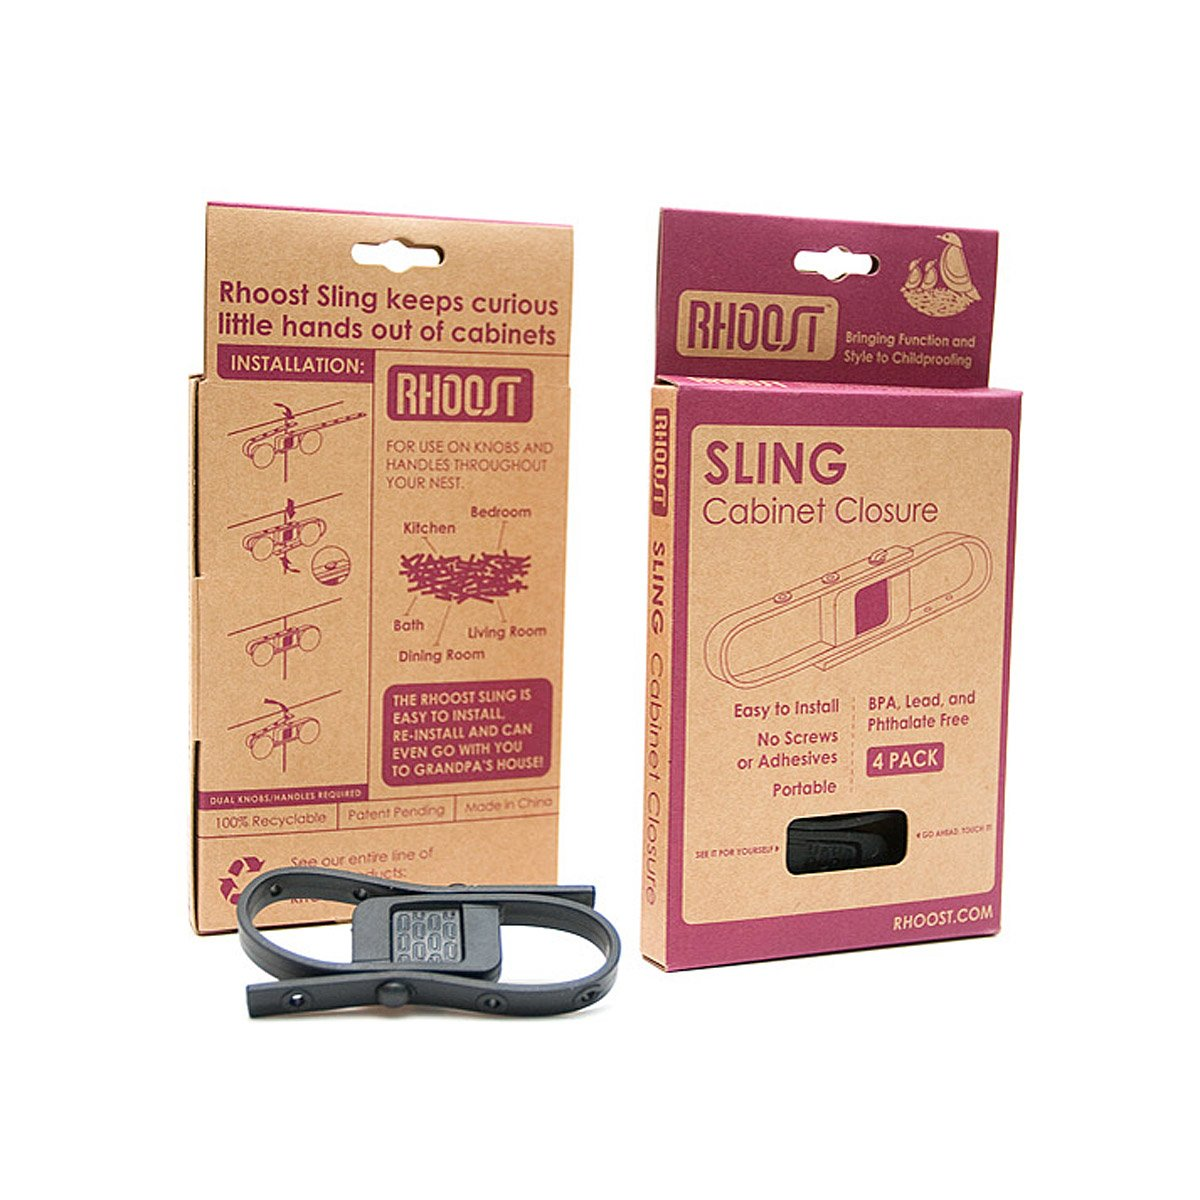 sling cabinet closures set of 4 rhoost baby proof let s talk about door dampers anandtech forums